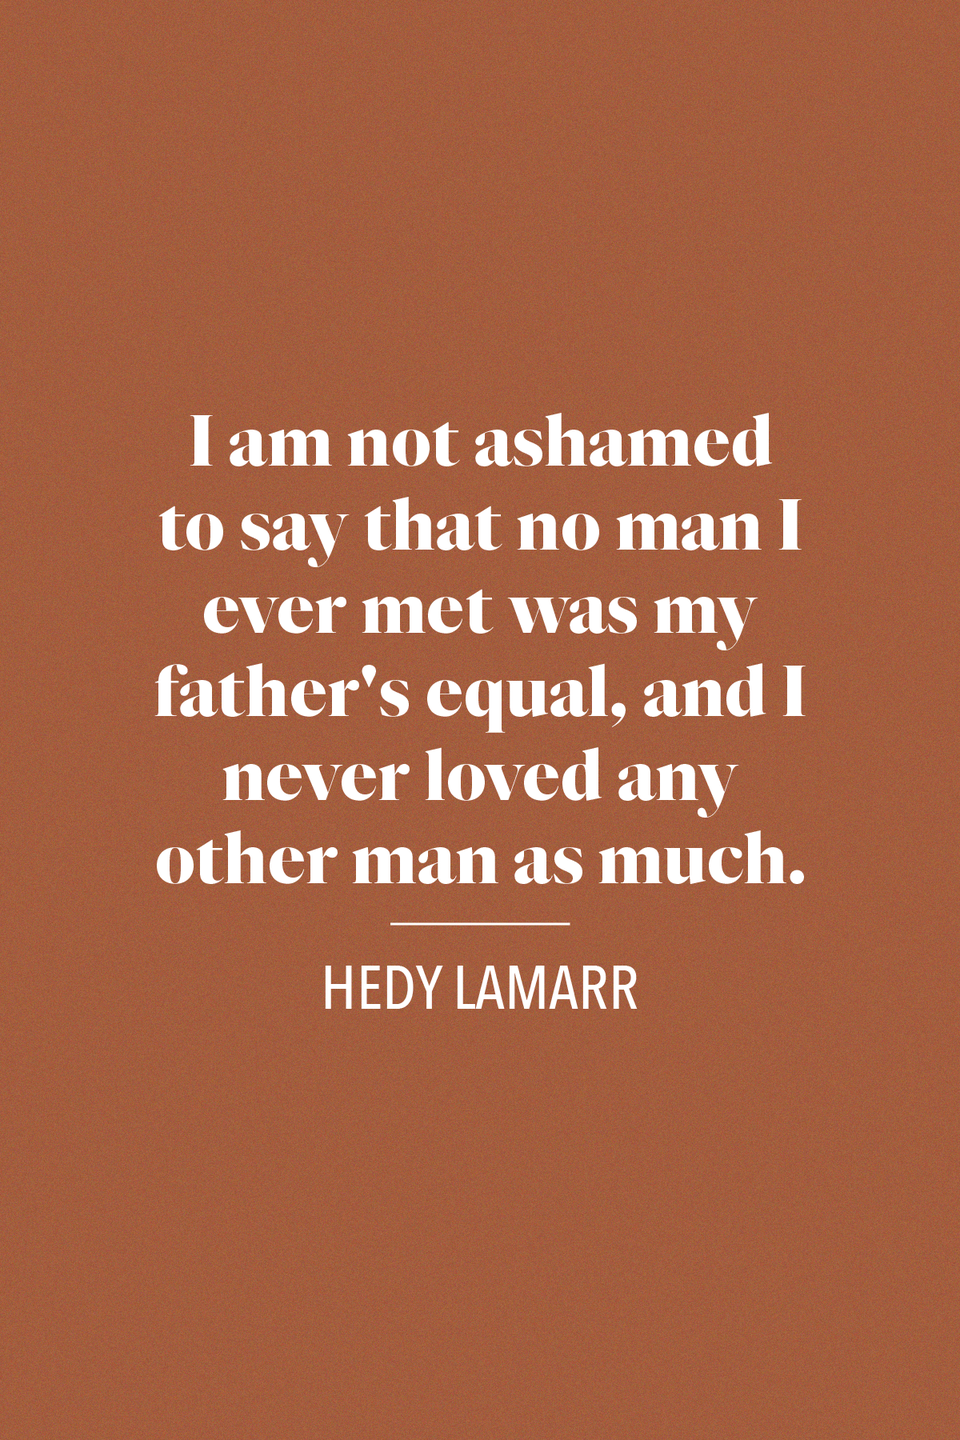 "<p>Austrian American acrtress Hedy Lamarr said ""I am not ashamed to say that no man I ever met was my father's equal, and I never loved any other man as much,"" in her autobiography <em><a href=""https://www.amazon.com/Ecstasy-Me-My-Life-Woman/dp/4871876268?tag=syn-yahoo-20&ascsubtag=%5Bartid%7C10072.g.32909234%5Bsrc%7Cyahoo-us"" rel=""nofollow noopener"" target=""_blank"" data-ylk=""slk:Ecstasy and me: My Life as a Woman"" class=""link rapid-noclick-resp"">Ecstasy and me: My Life as a Woman</a>.</em></p>"